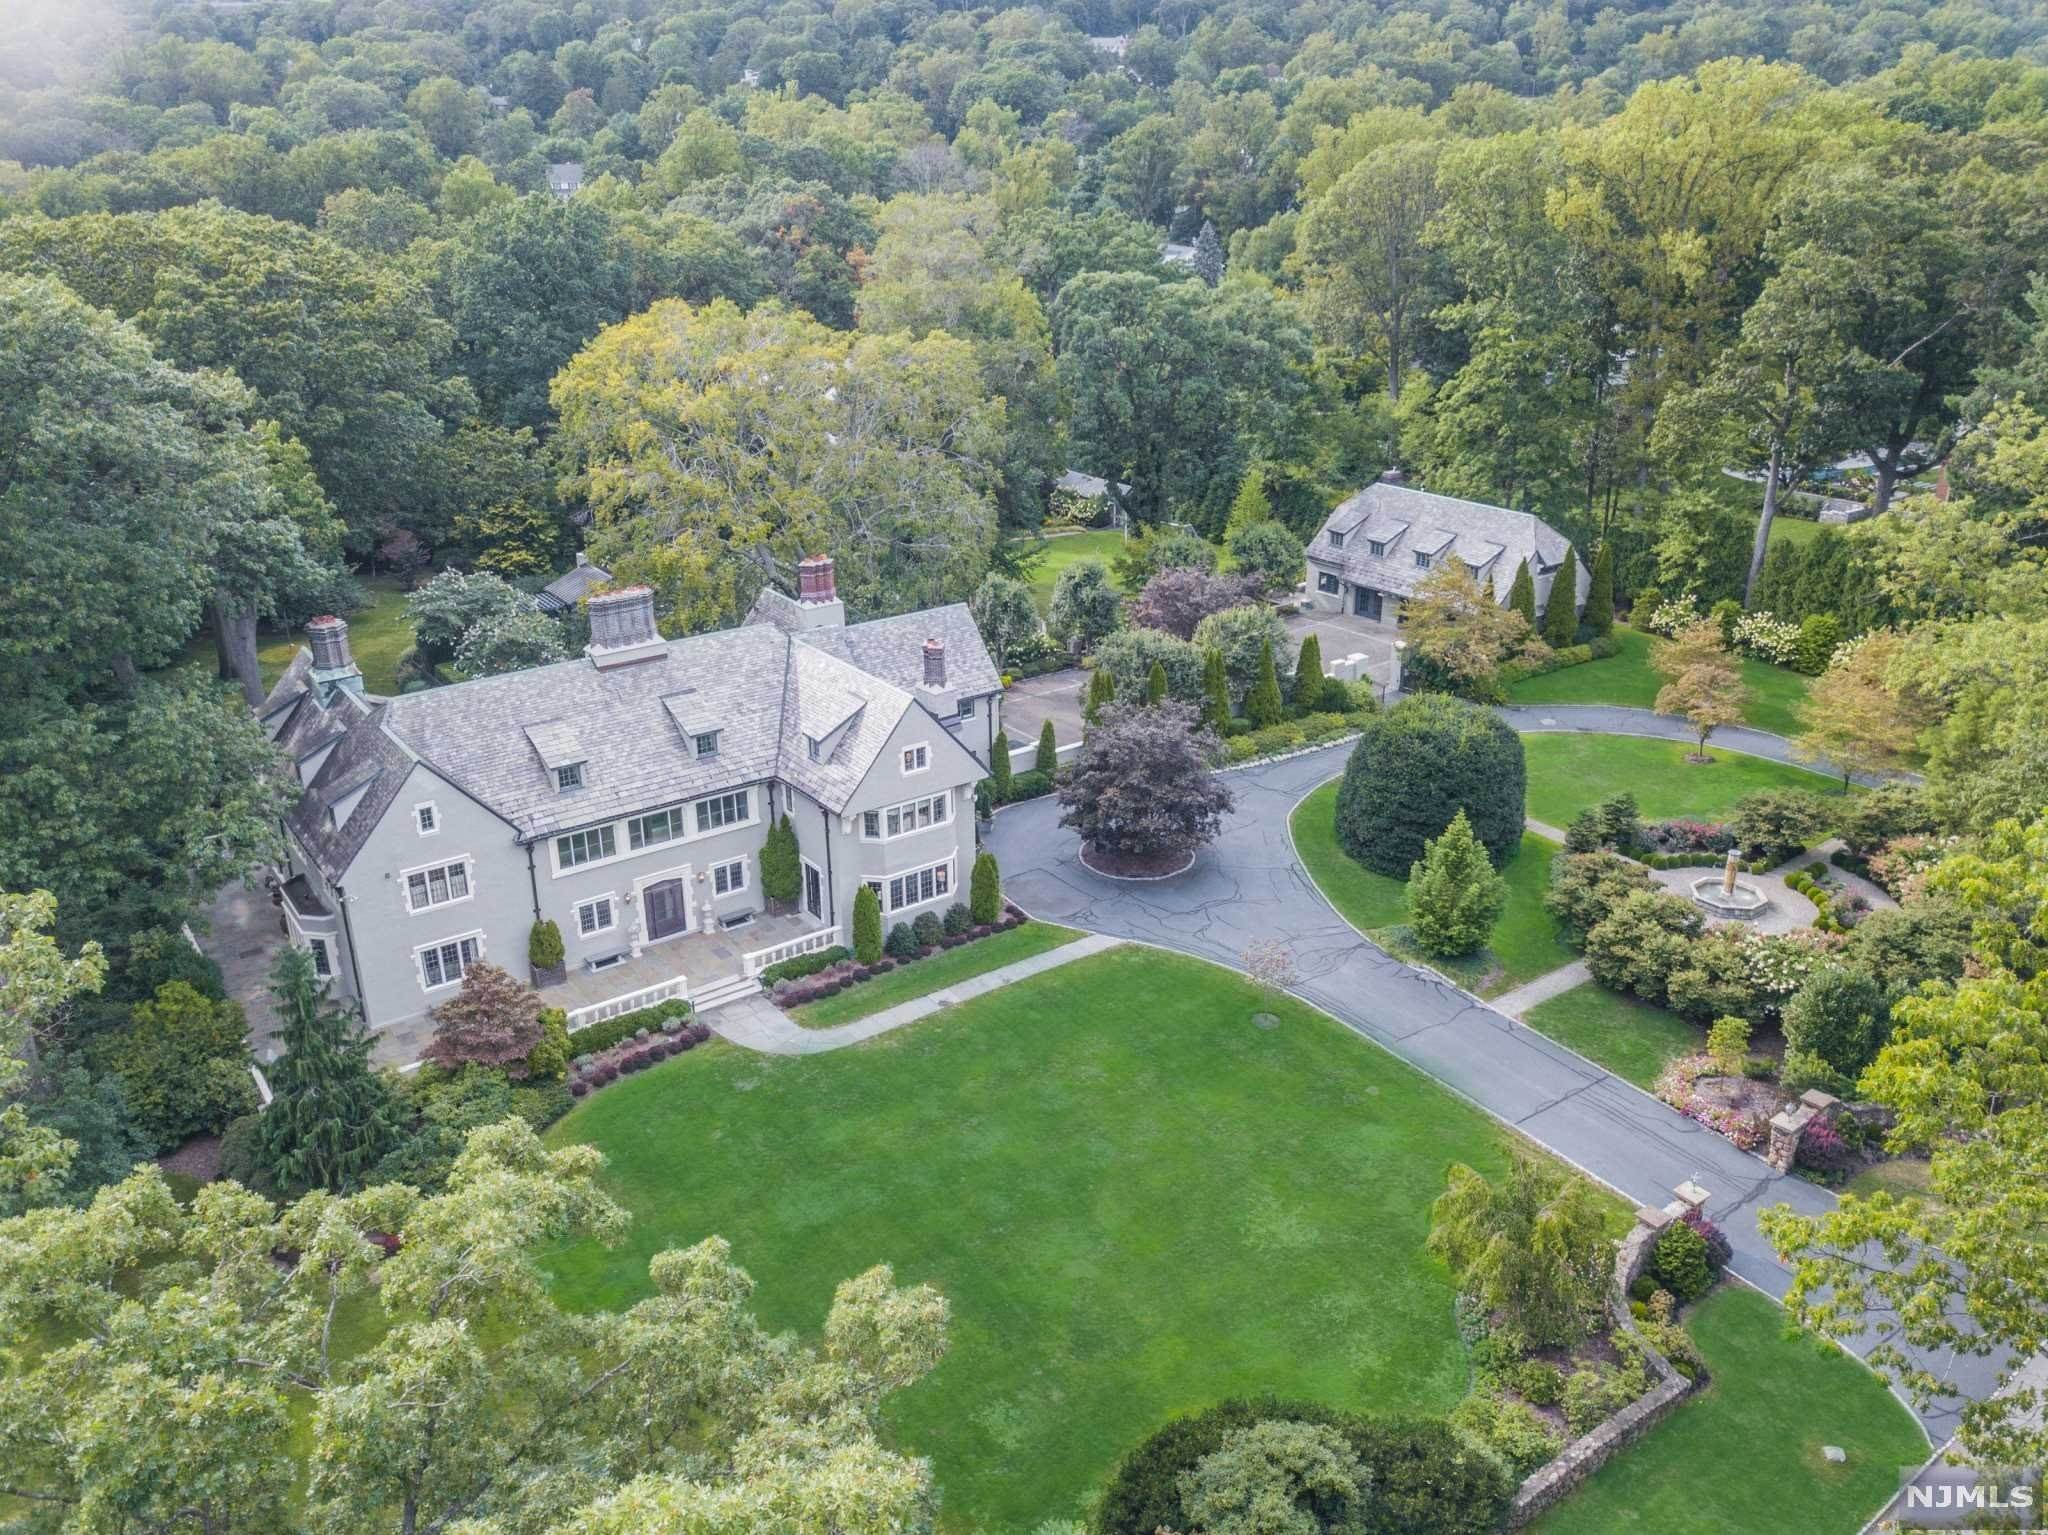 Single Family Home for Sale at 4 Stonebridge Road Montclair, New Jersey, 07042 United States